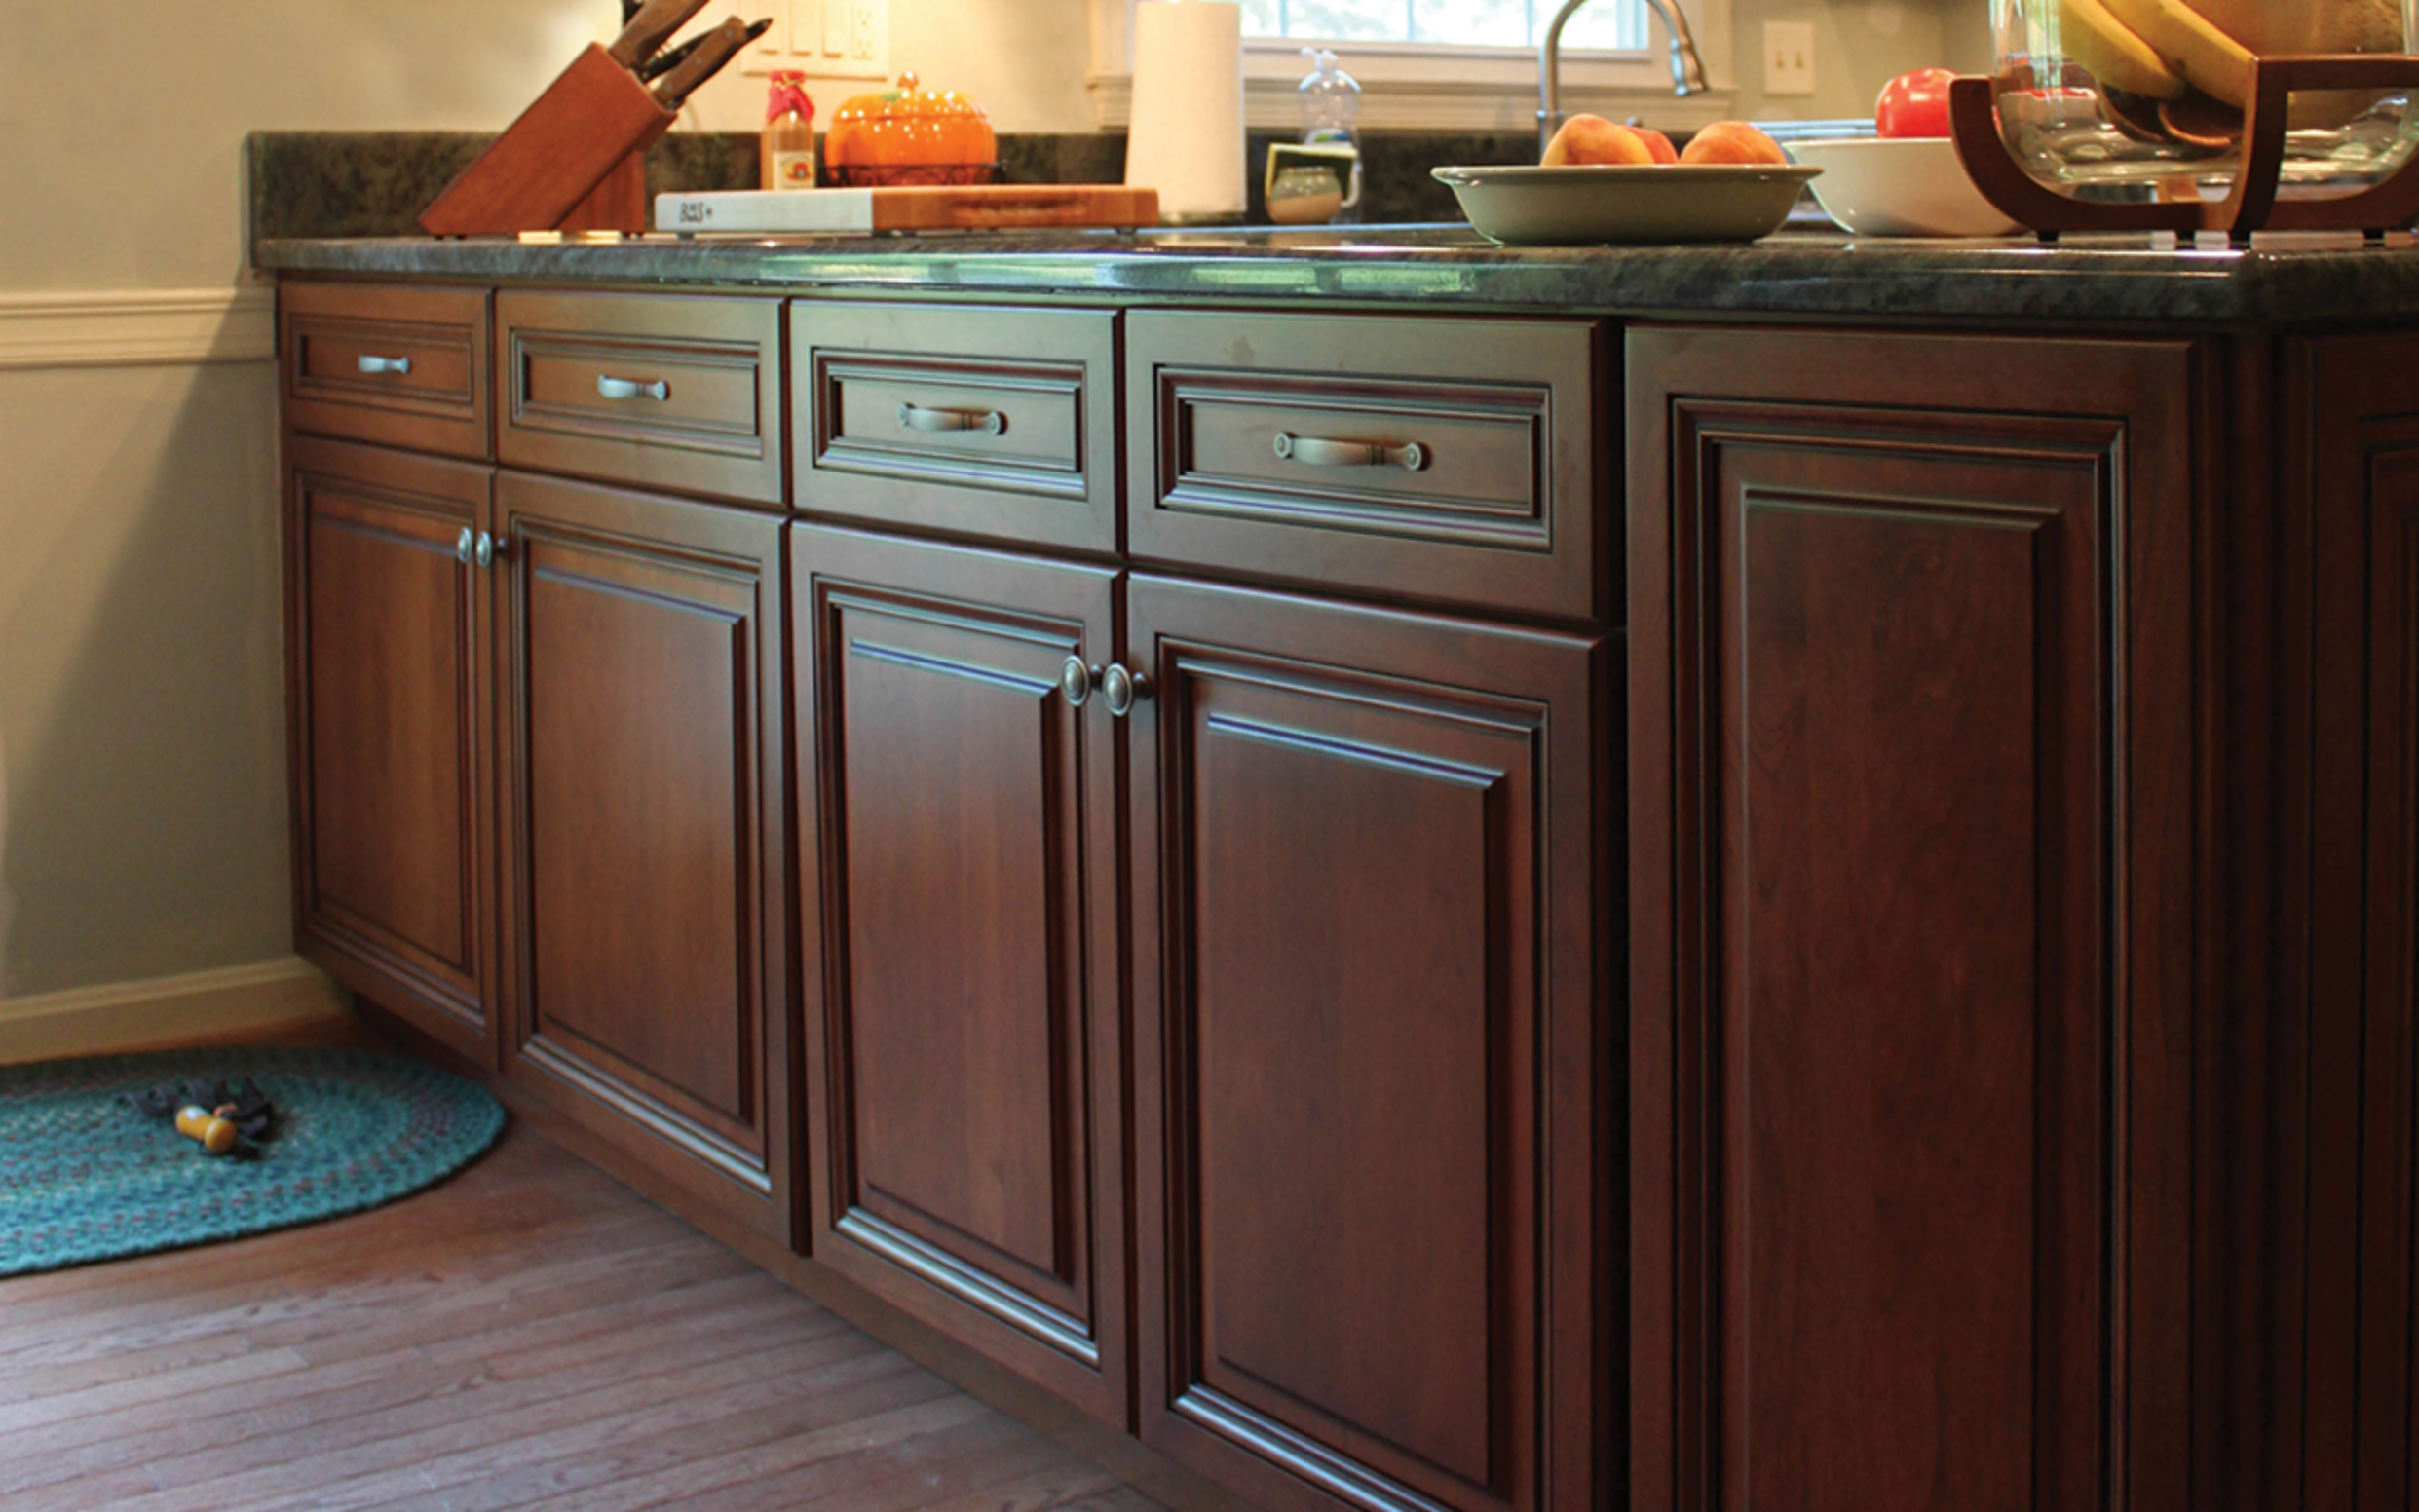 National Refacing Systems - Lowes Cherry Wood Kitchen Cabinets